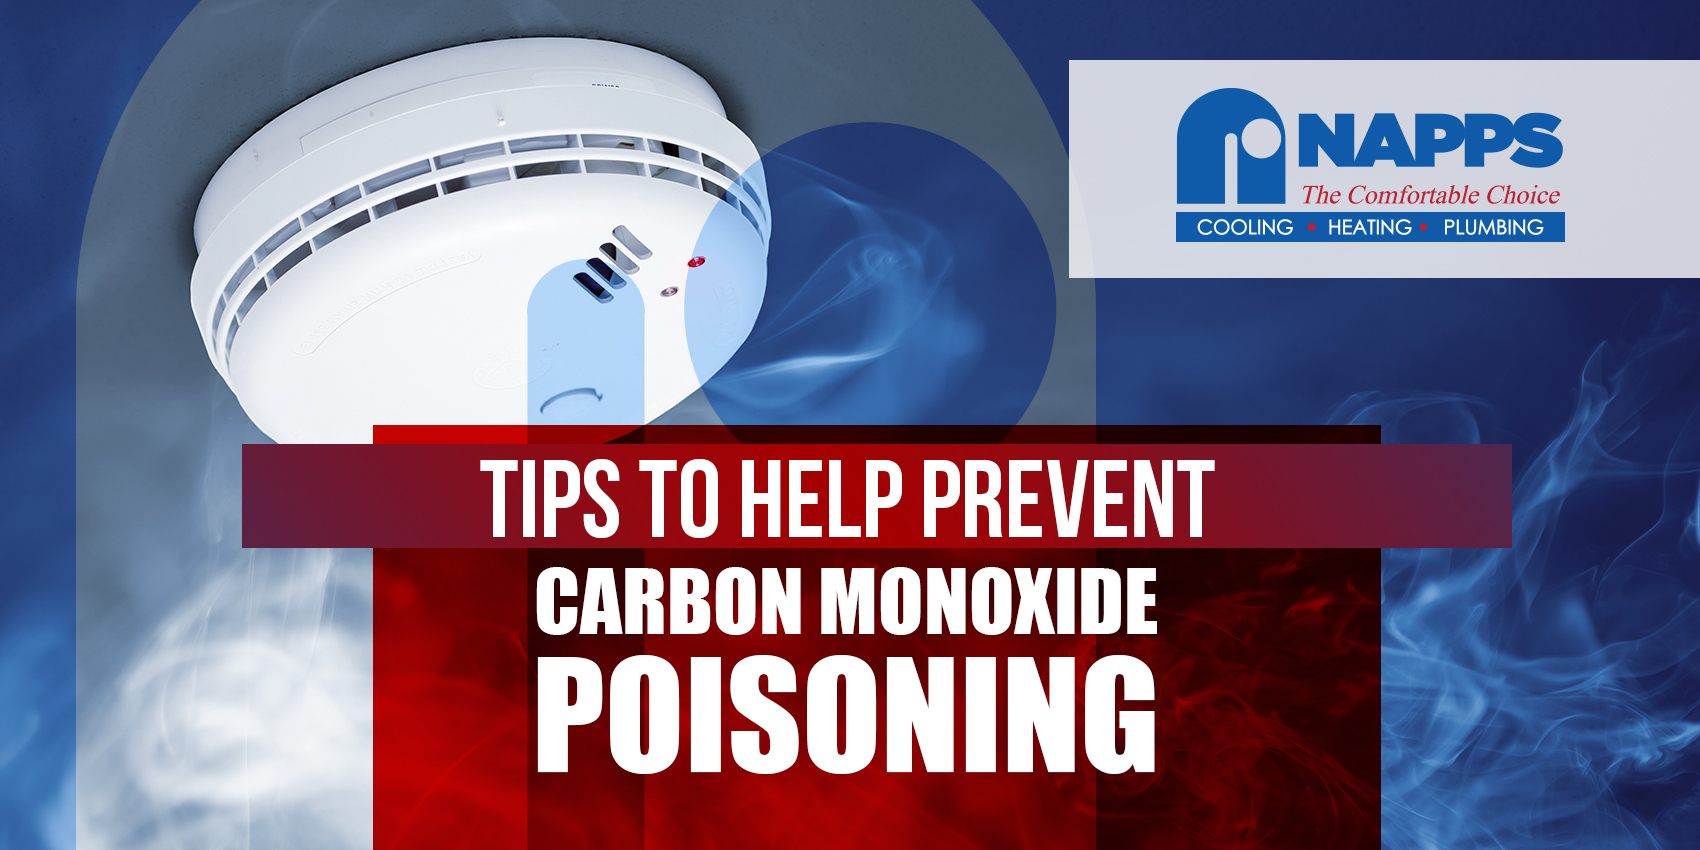 Tips to Help Prevent Carbon Monoxide Poisoning